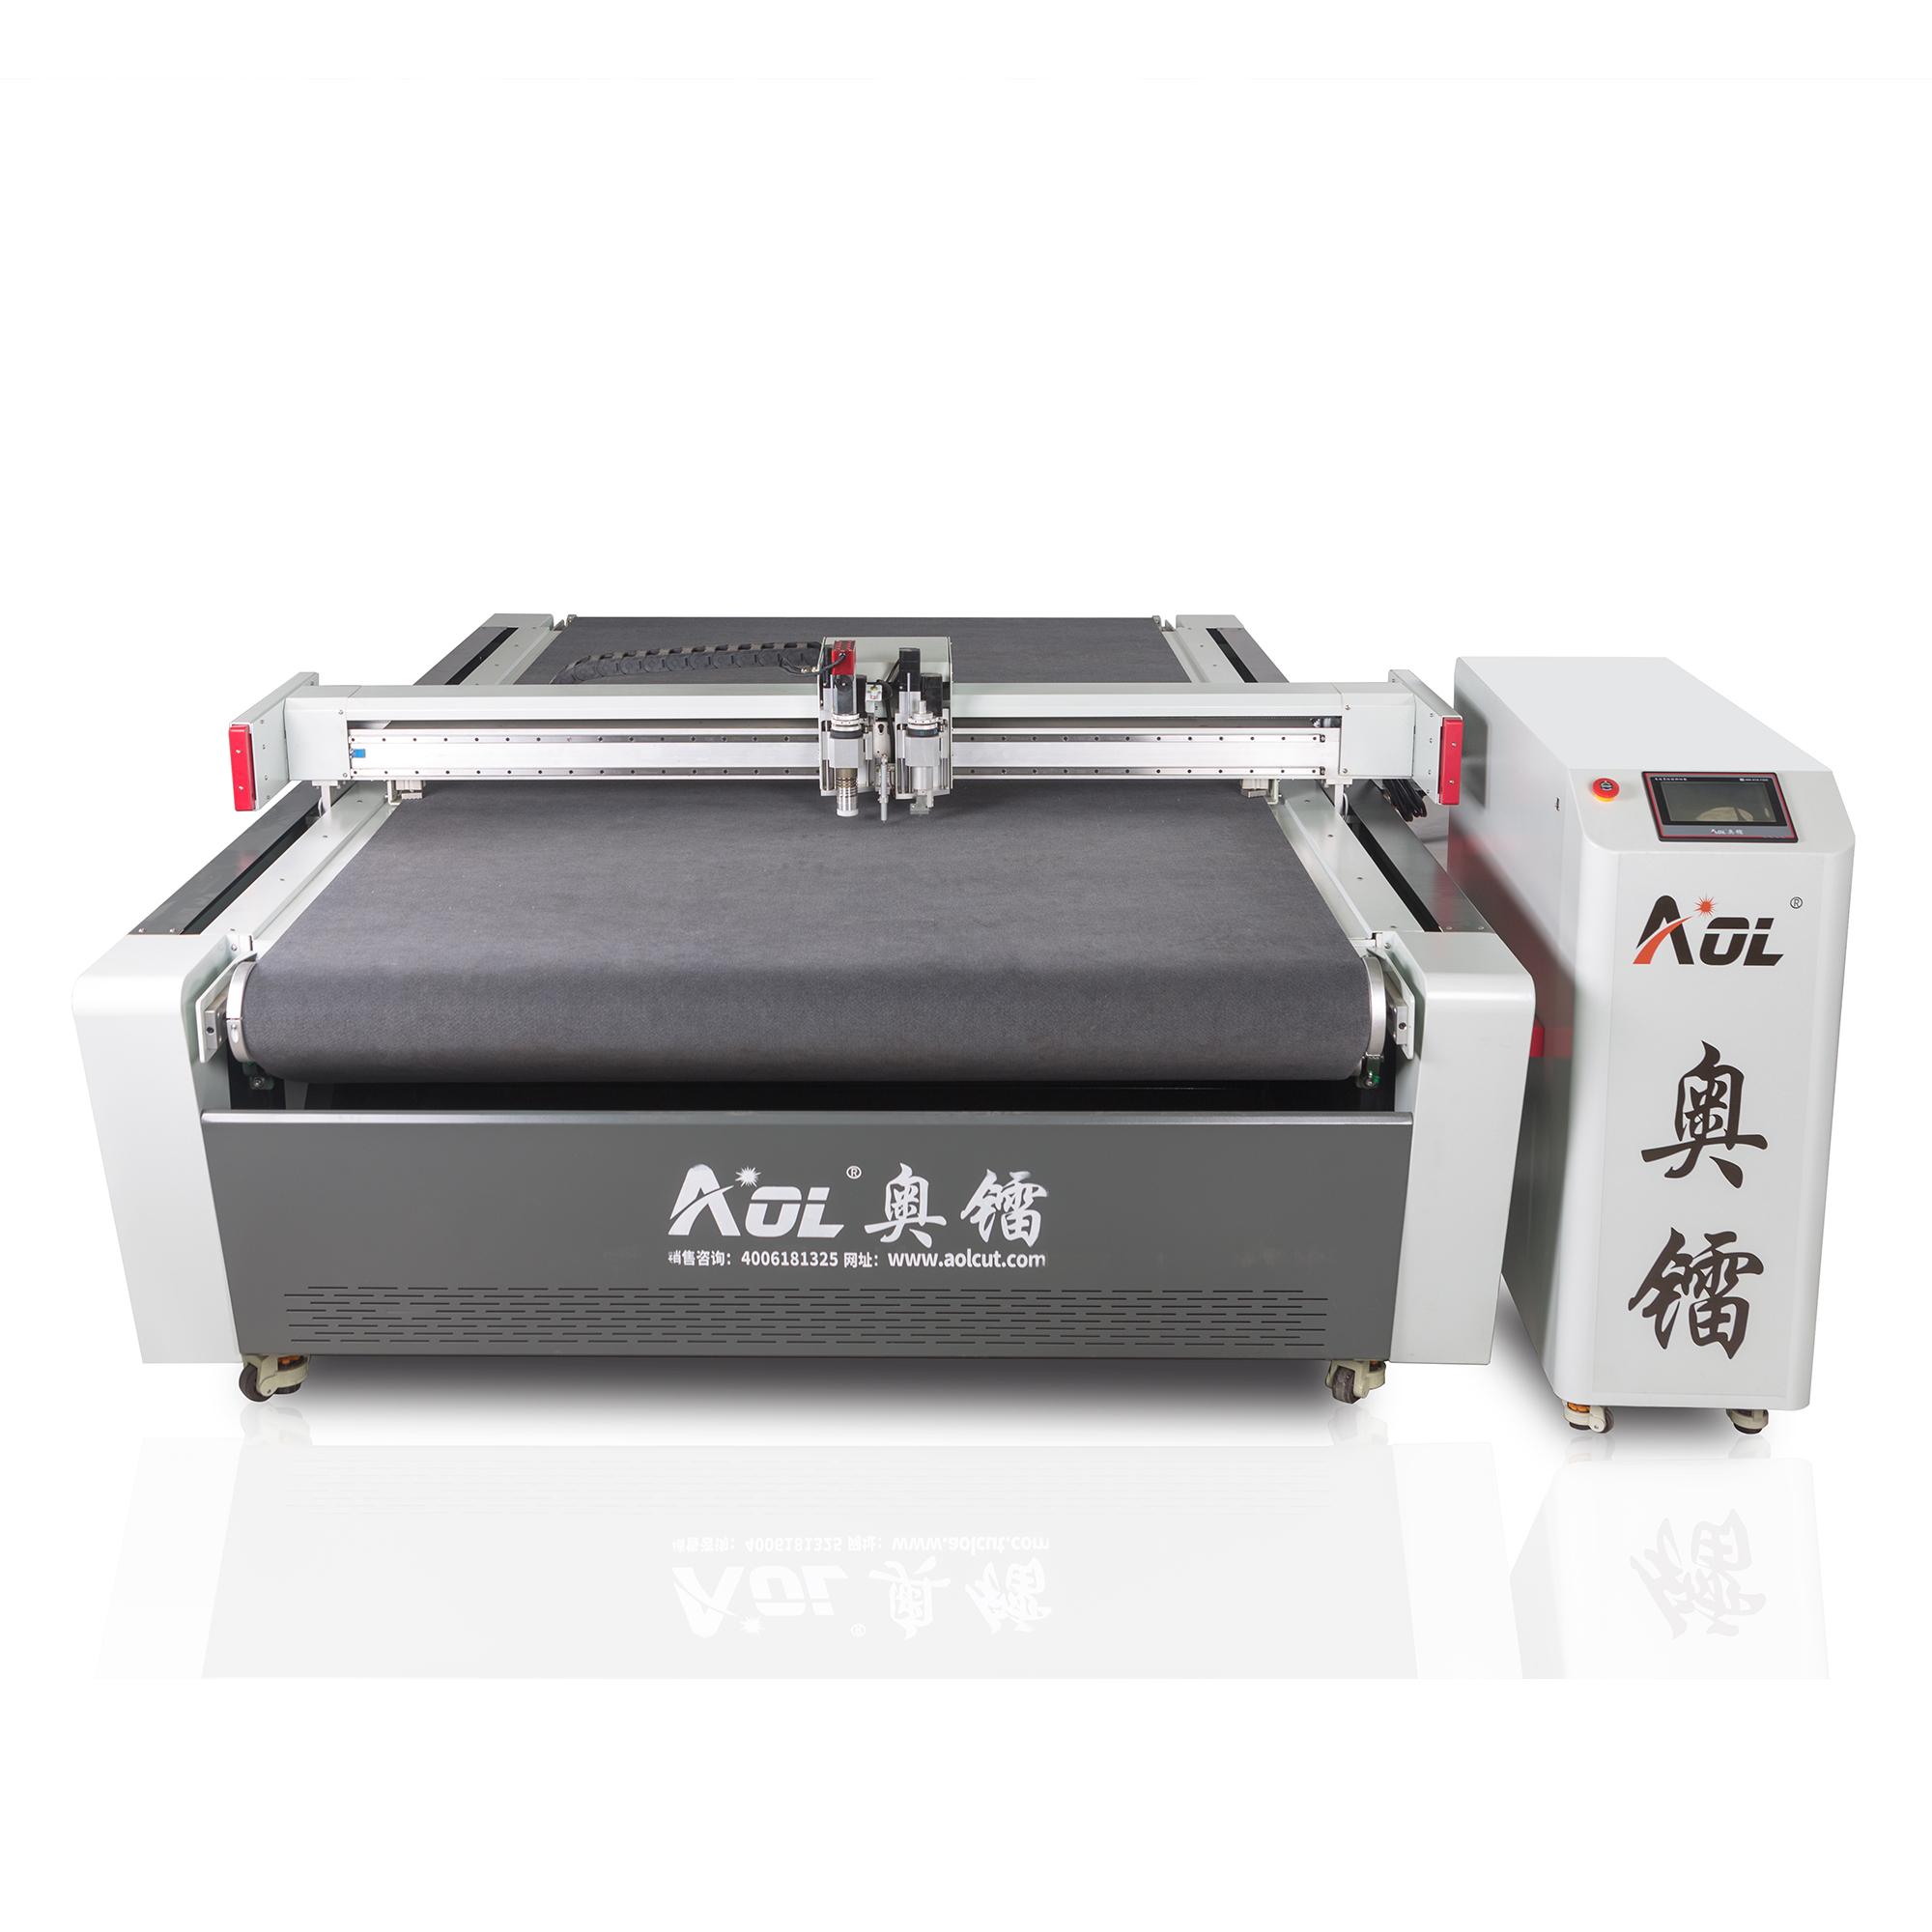 AOL automatic ComputerIized Controlled Cutting Systems with Dual Heads for Carton Sampling Making Cutter